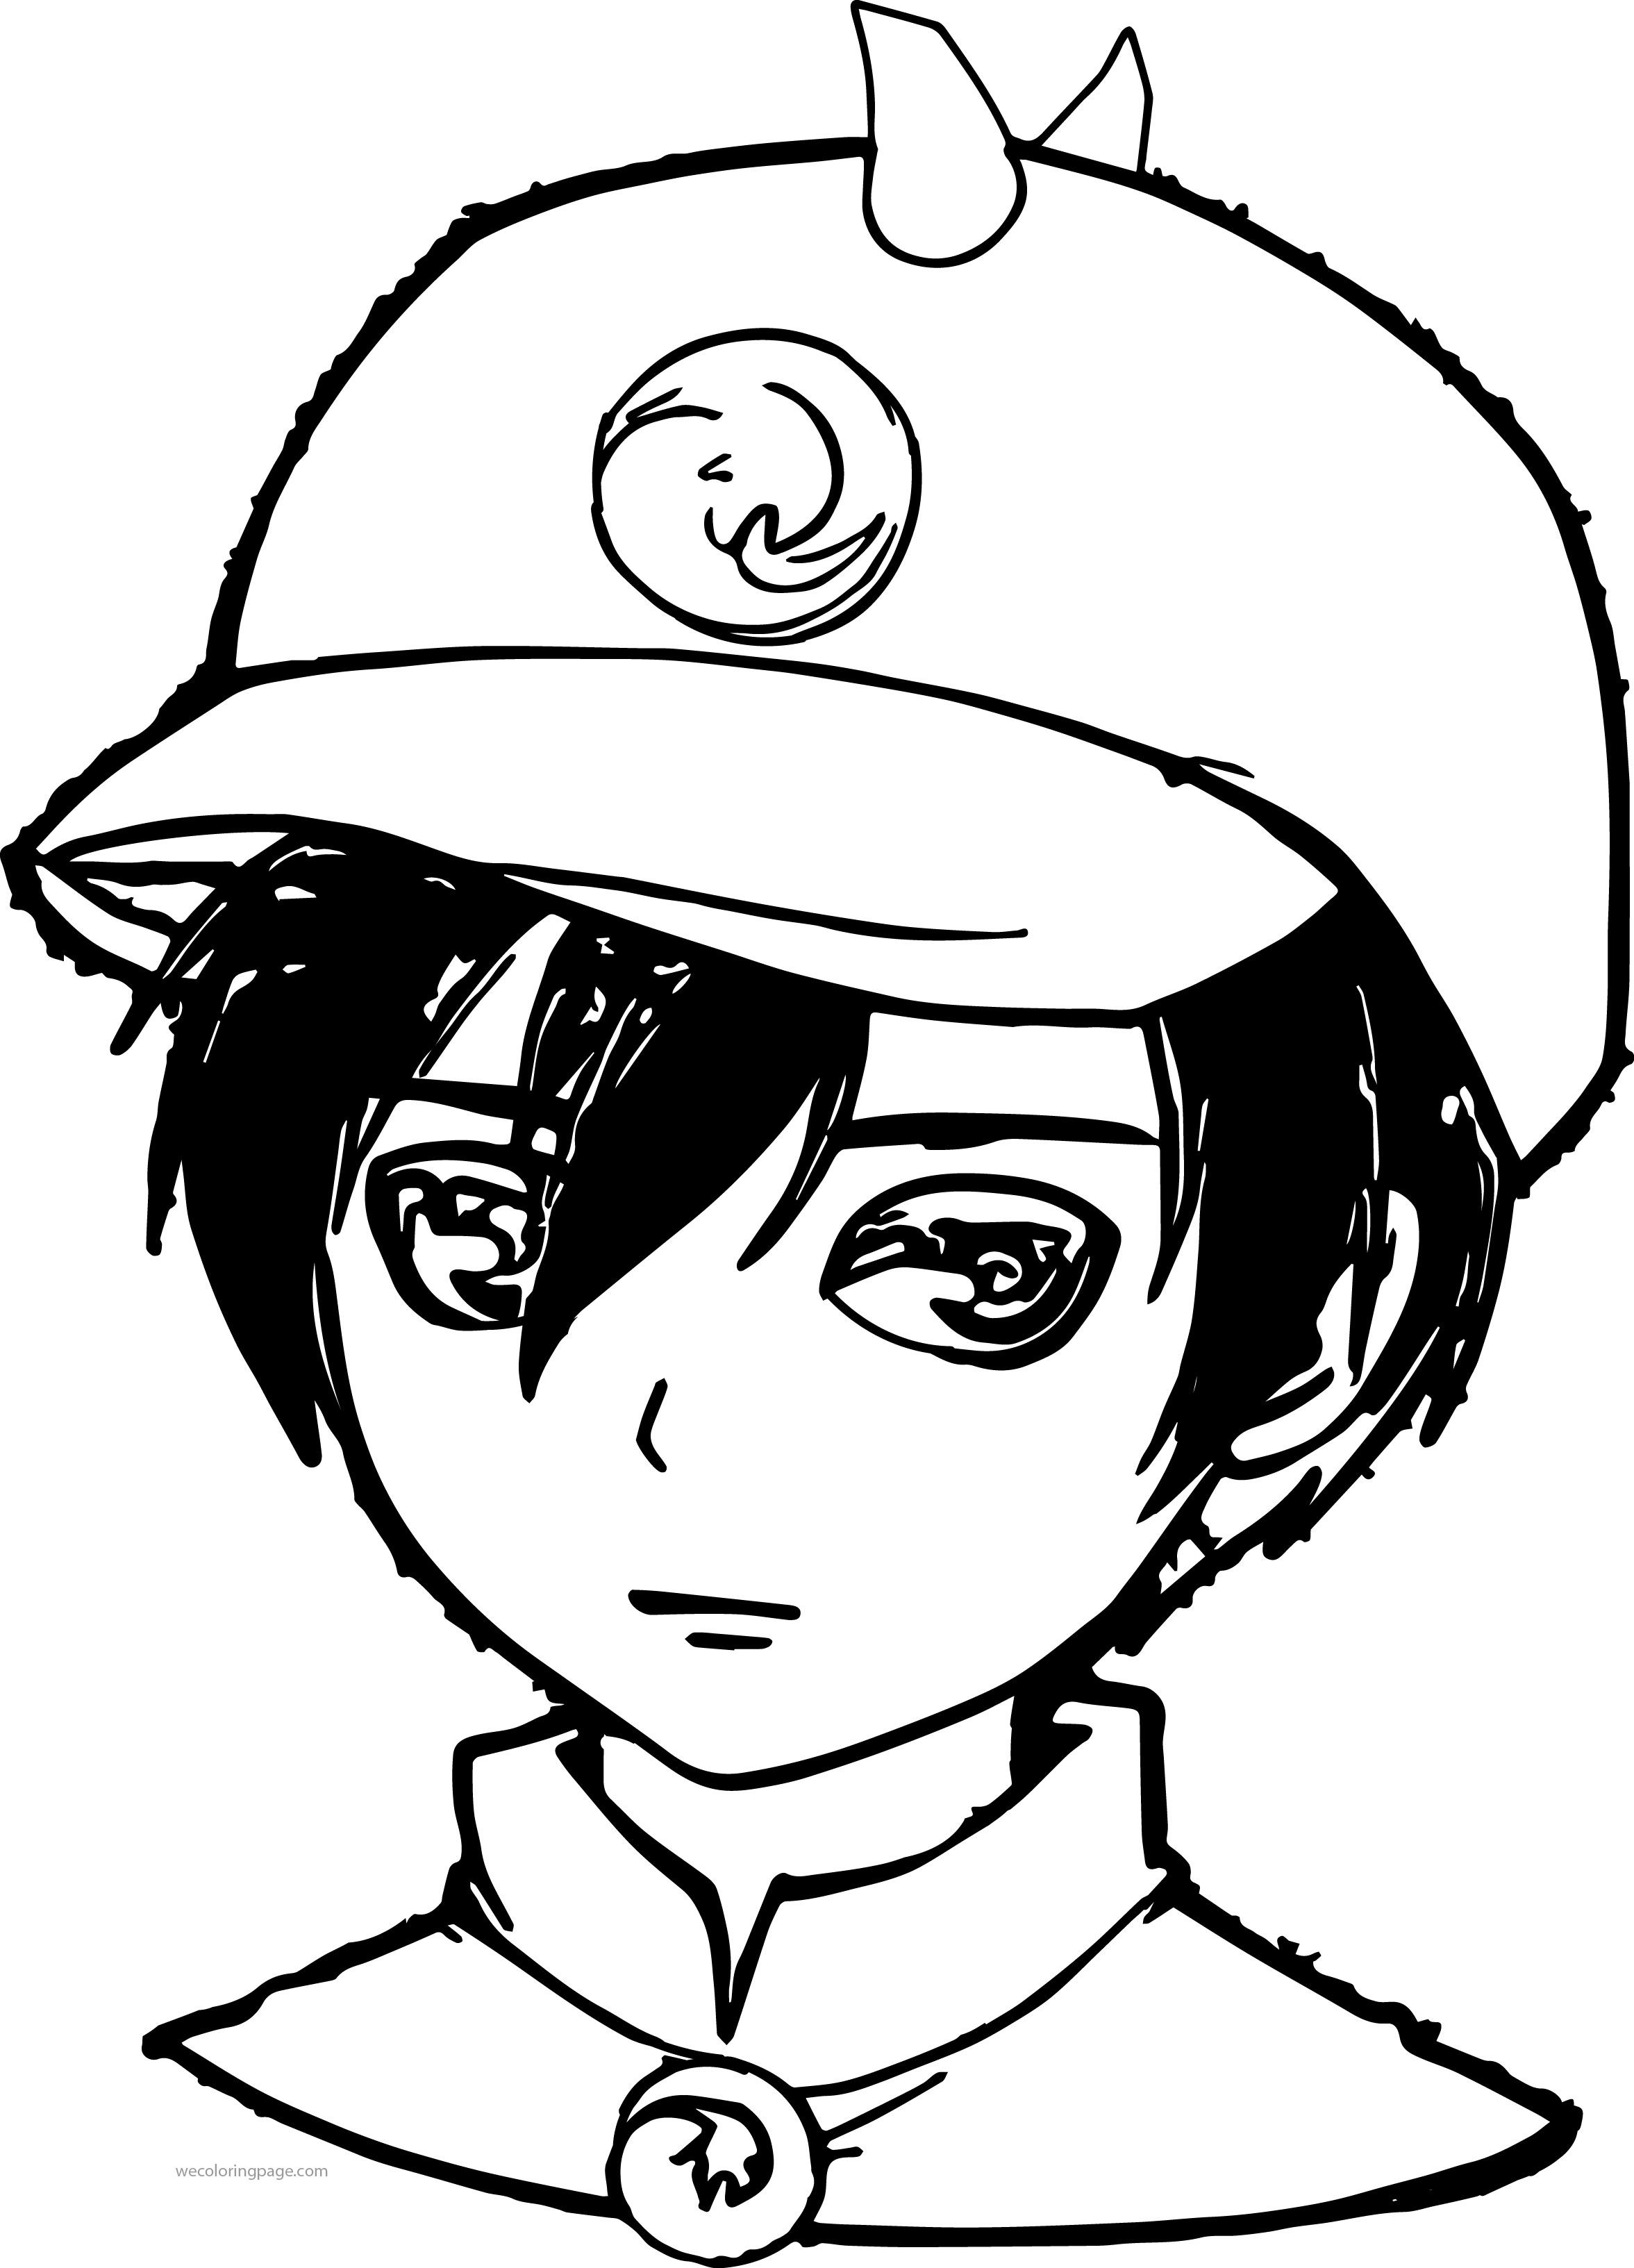 Awesome Face Boboiboy Coloring Page Wecoloringpage Pinterest